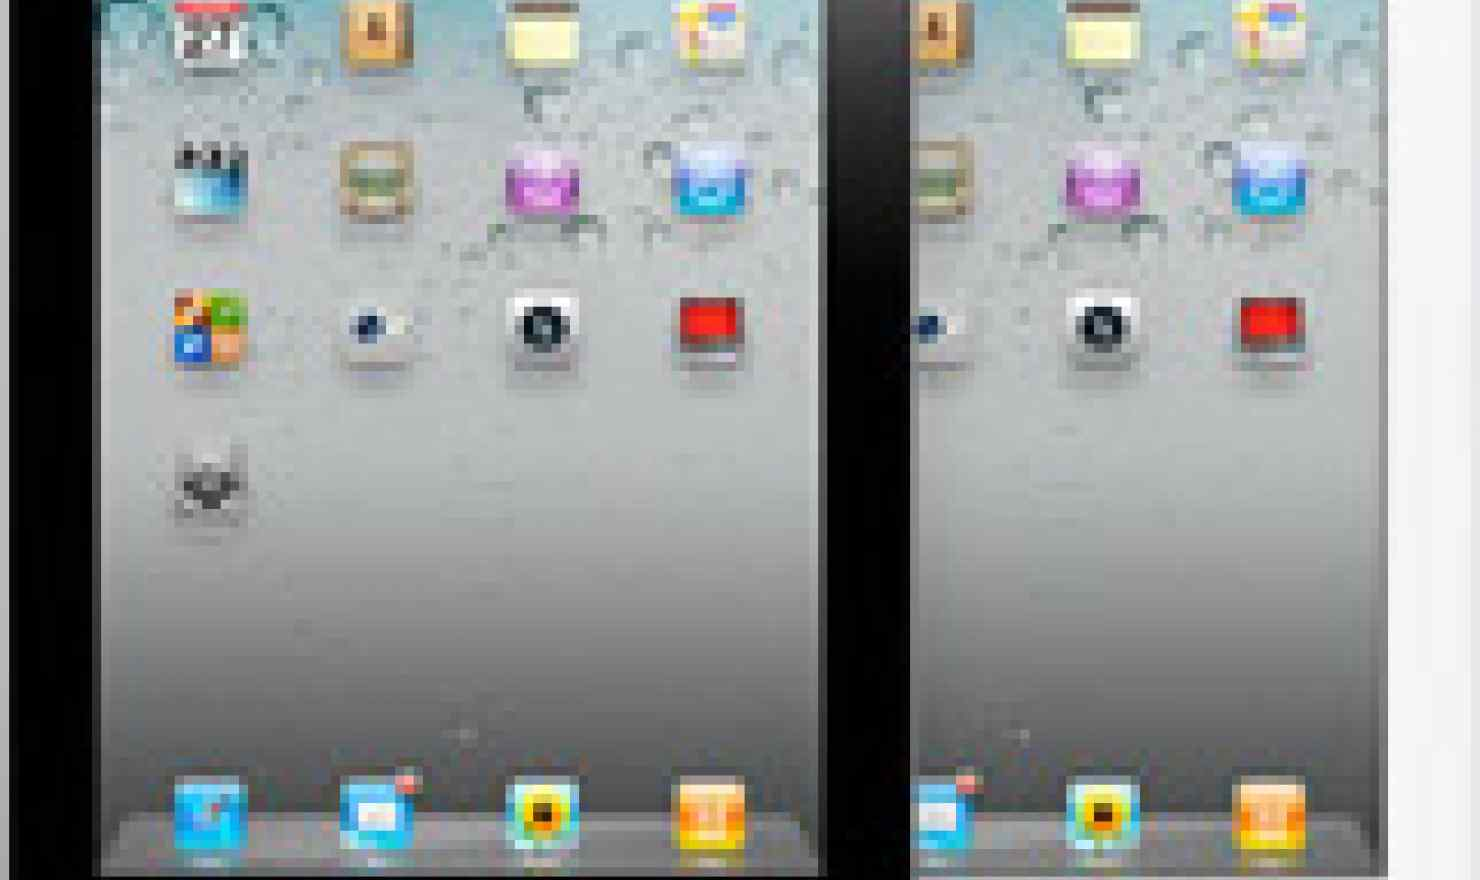 Apple iPad 2 App EyeDispense